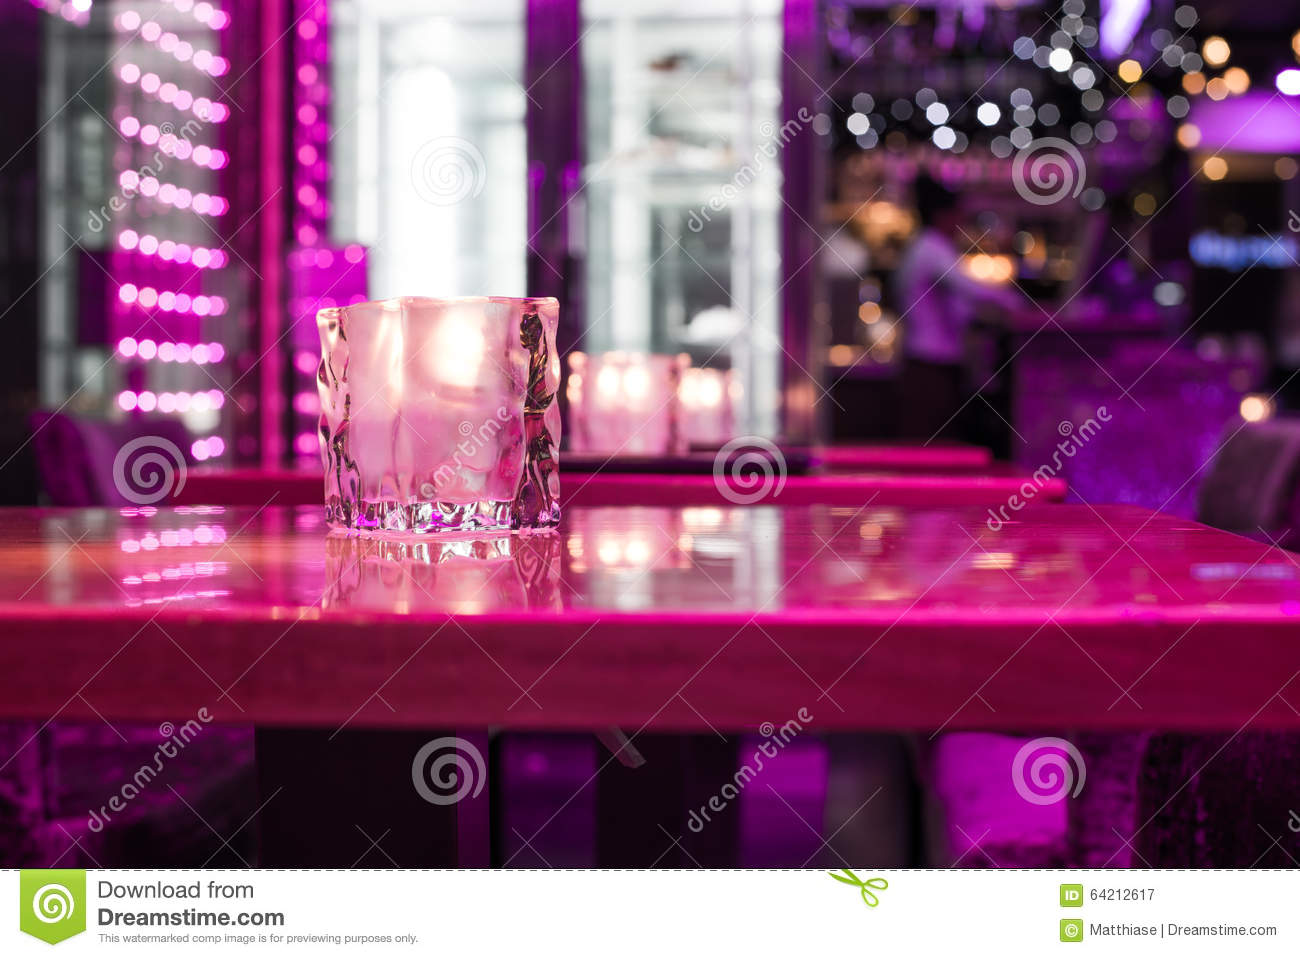 restaurant interior stock photo - image: 64212617